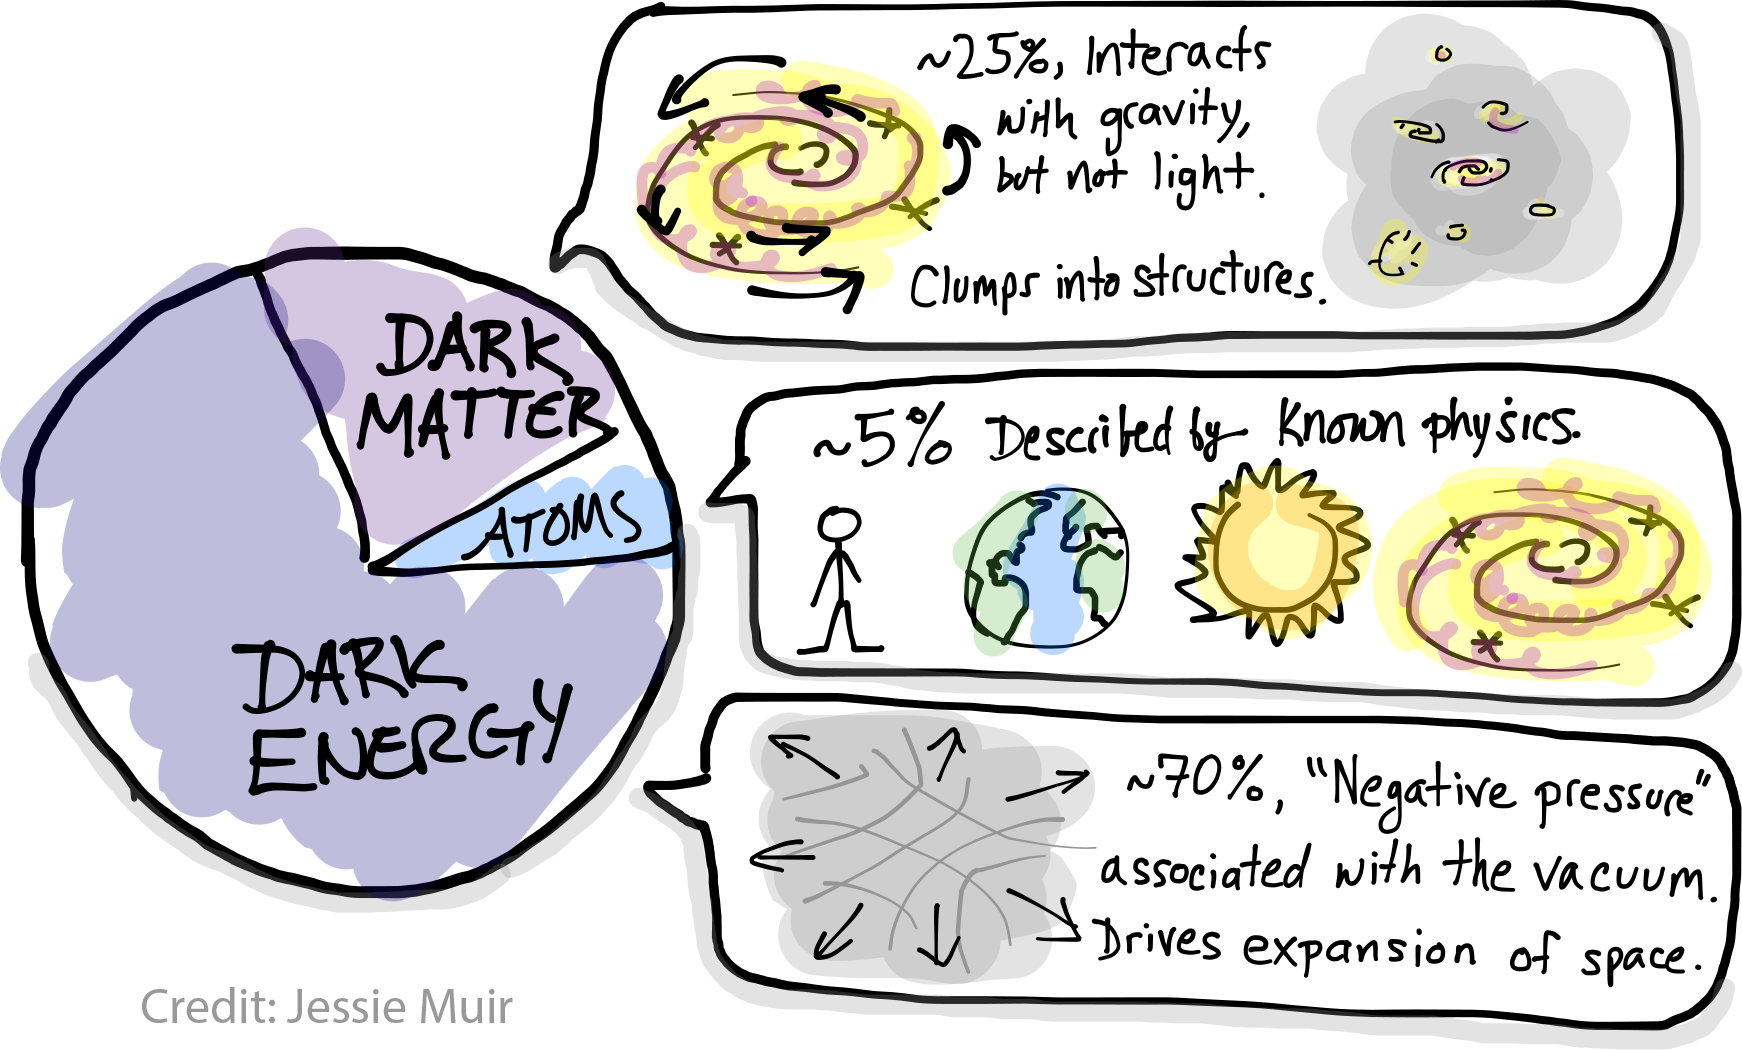 "alt=""Cartoon version of the Lambda CDM pie chart describing the matter and energy content of the Universe. A 5\% slicee is labeled 'atoms', 25\% is labeled 'dark matter', and 70\% is labeled 'dark energy'. Speech bubbles contain descriptions of these with some simple illustraitons. The dark matter bubble shows a galaxy with arrows indicating rotation, and a group of galaxies in a gray blob representing a dark matter halo. Its description says: 25\%, interacts with gravity but not light. Clumps into structures.' The atoms bubble says '5\% described by known physics' and contains a picture of a stick figure, earth, the sun, and a galaxy. The dark energy bubble says '70\%, negative pressure associated with the vacuum. Drives expansion of space,"" and contains a cartoon of a stretching space-time grid."